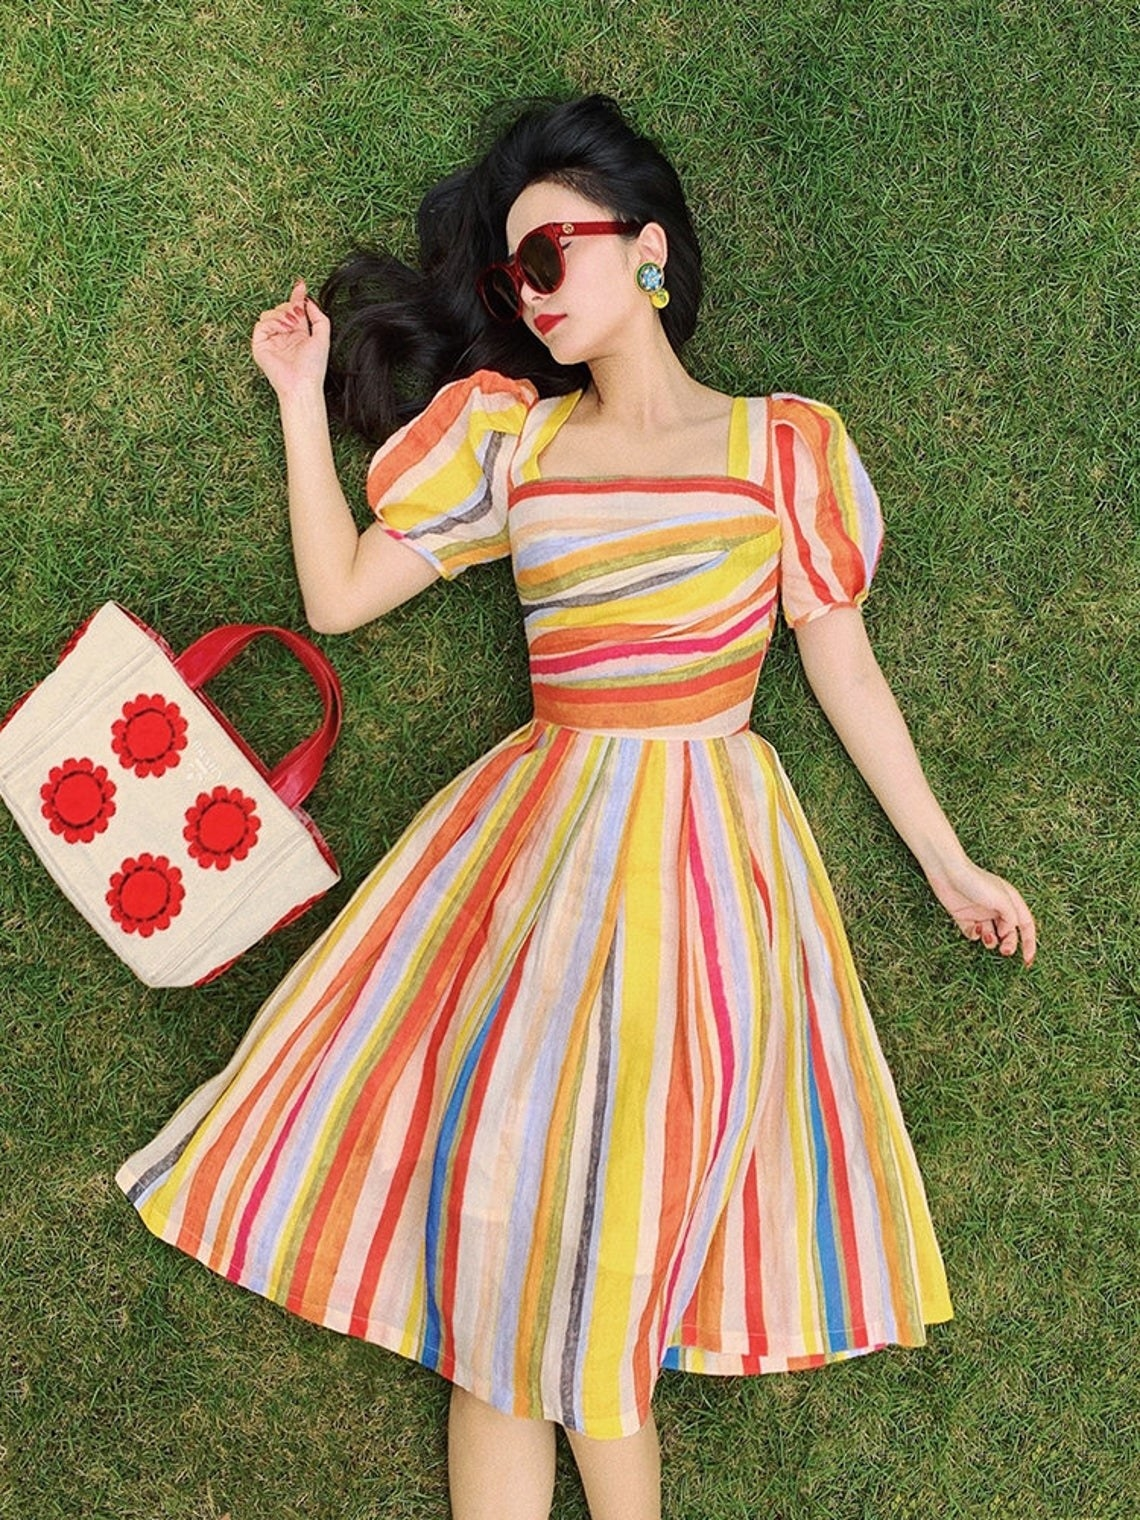 A model laying in the grass while wearing the midi dress